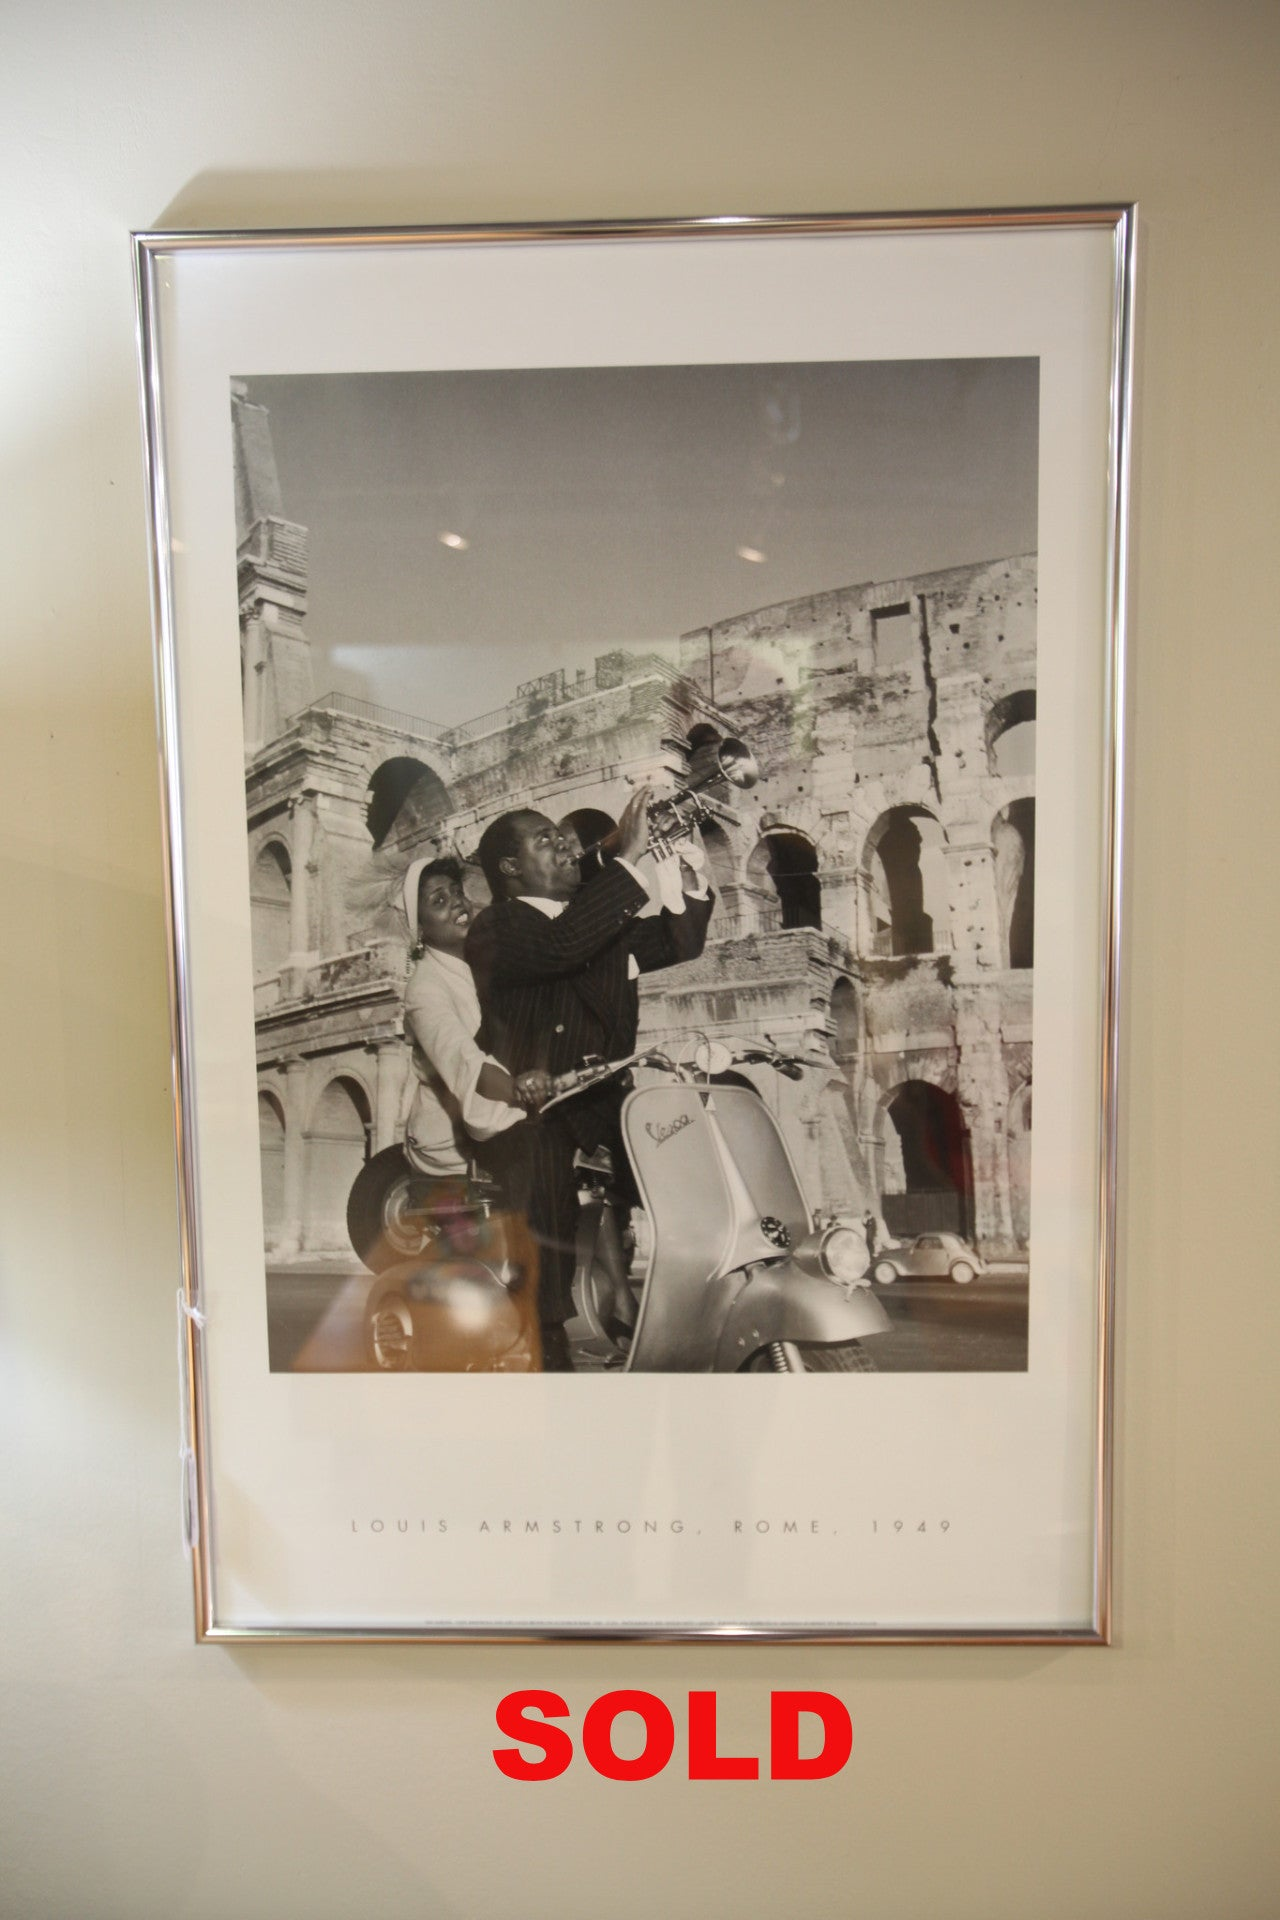 Louie Armstrong in Rome Print